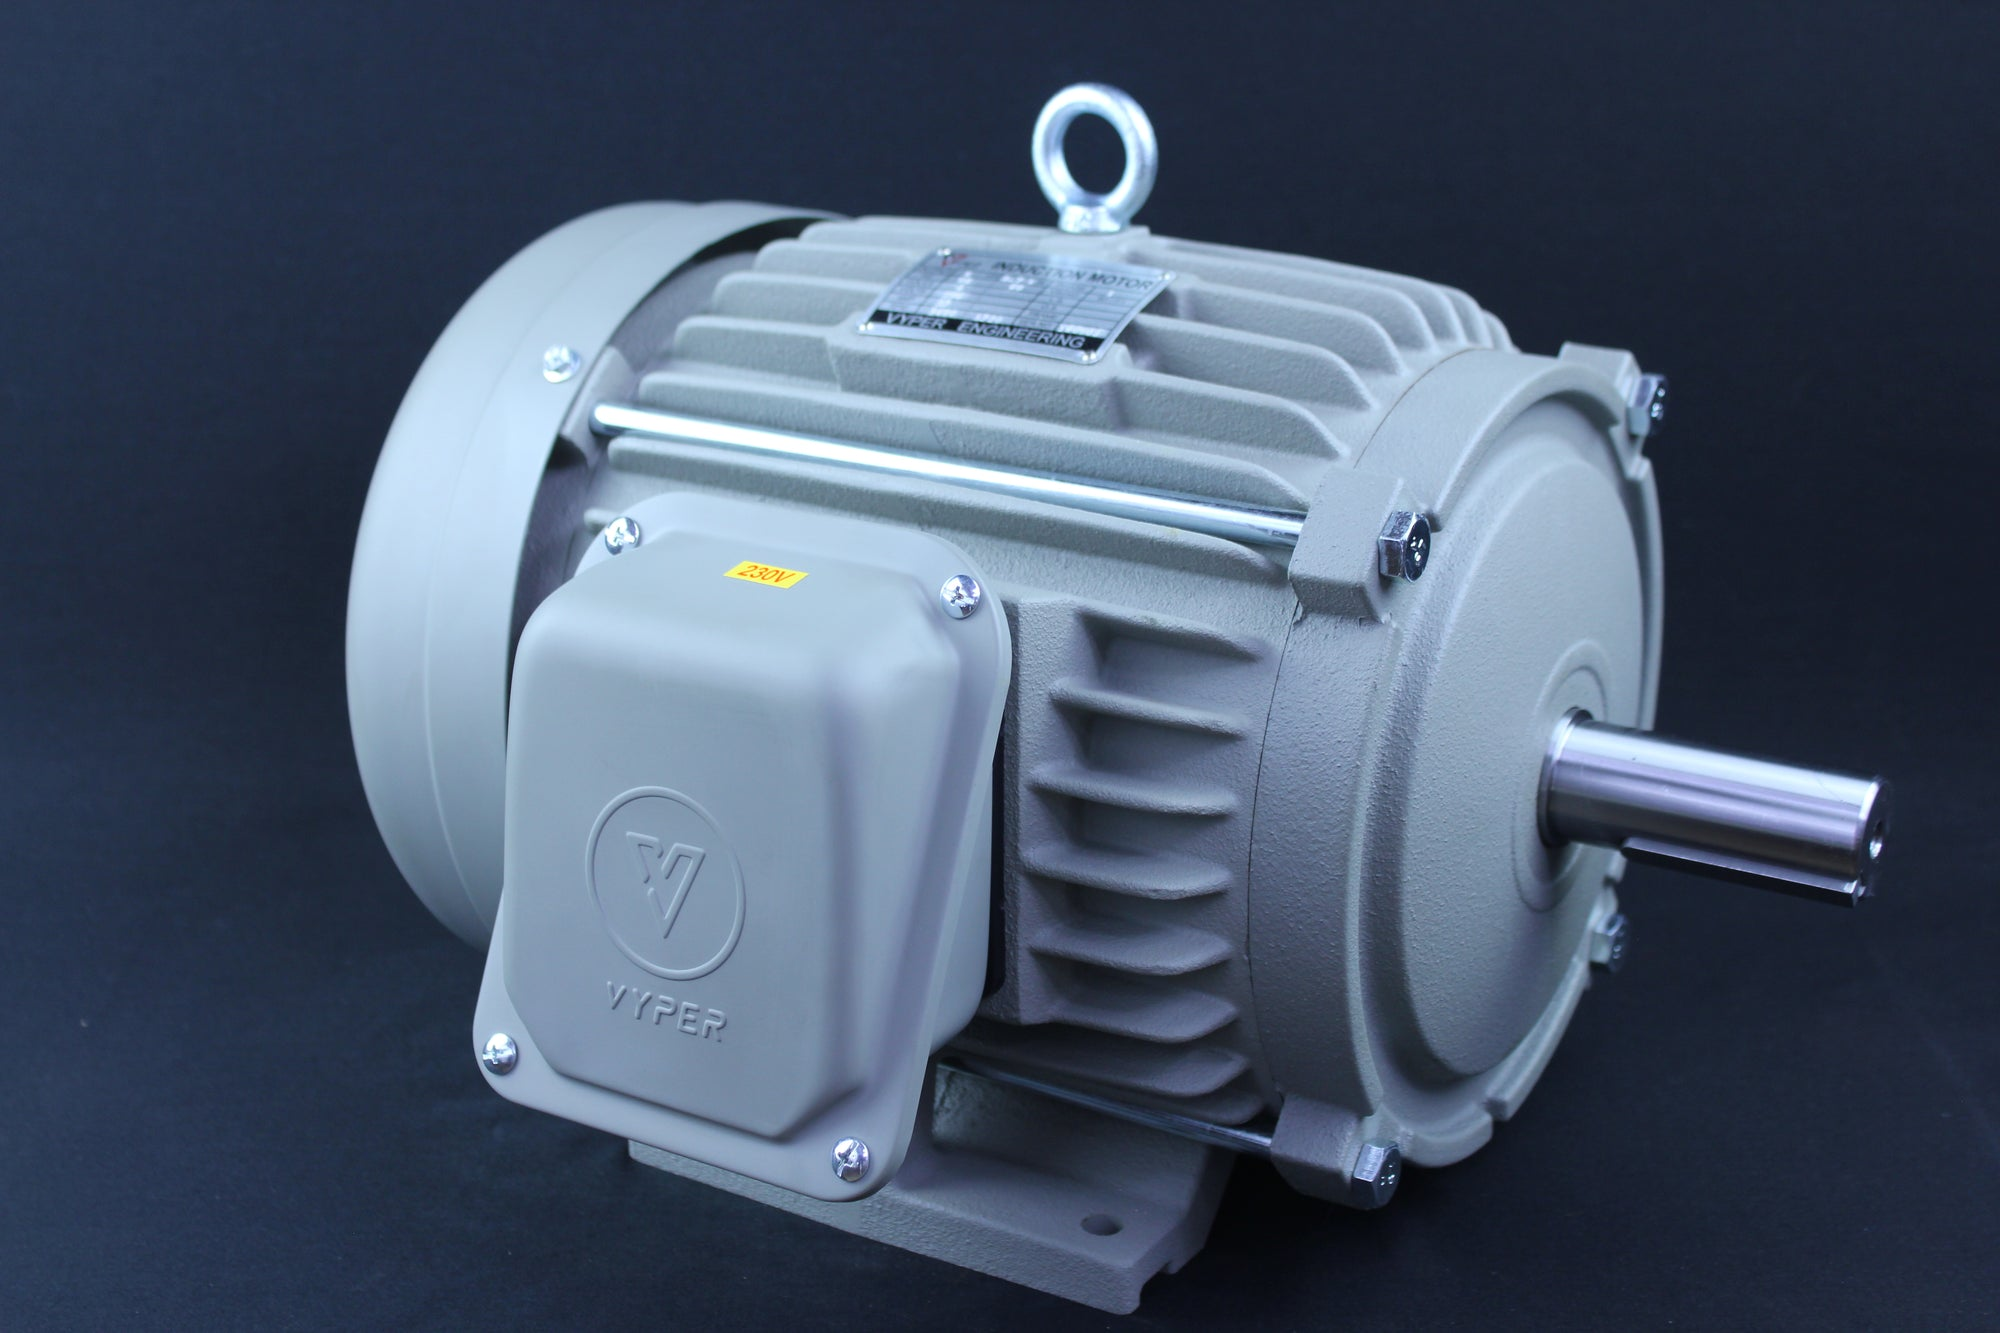 Single Phase Electrical Motor - 5HP - 230V - 1430/1720RPM - 50/60HZ - 213T Foot